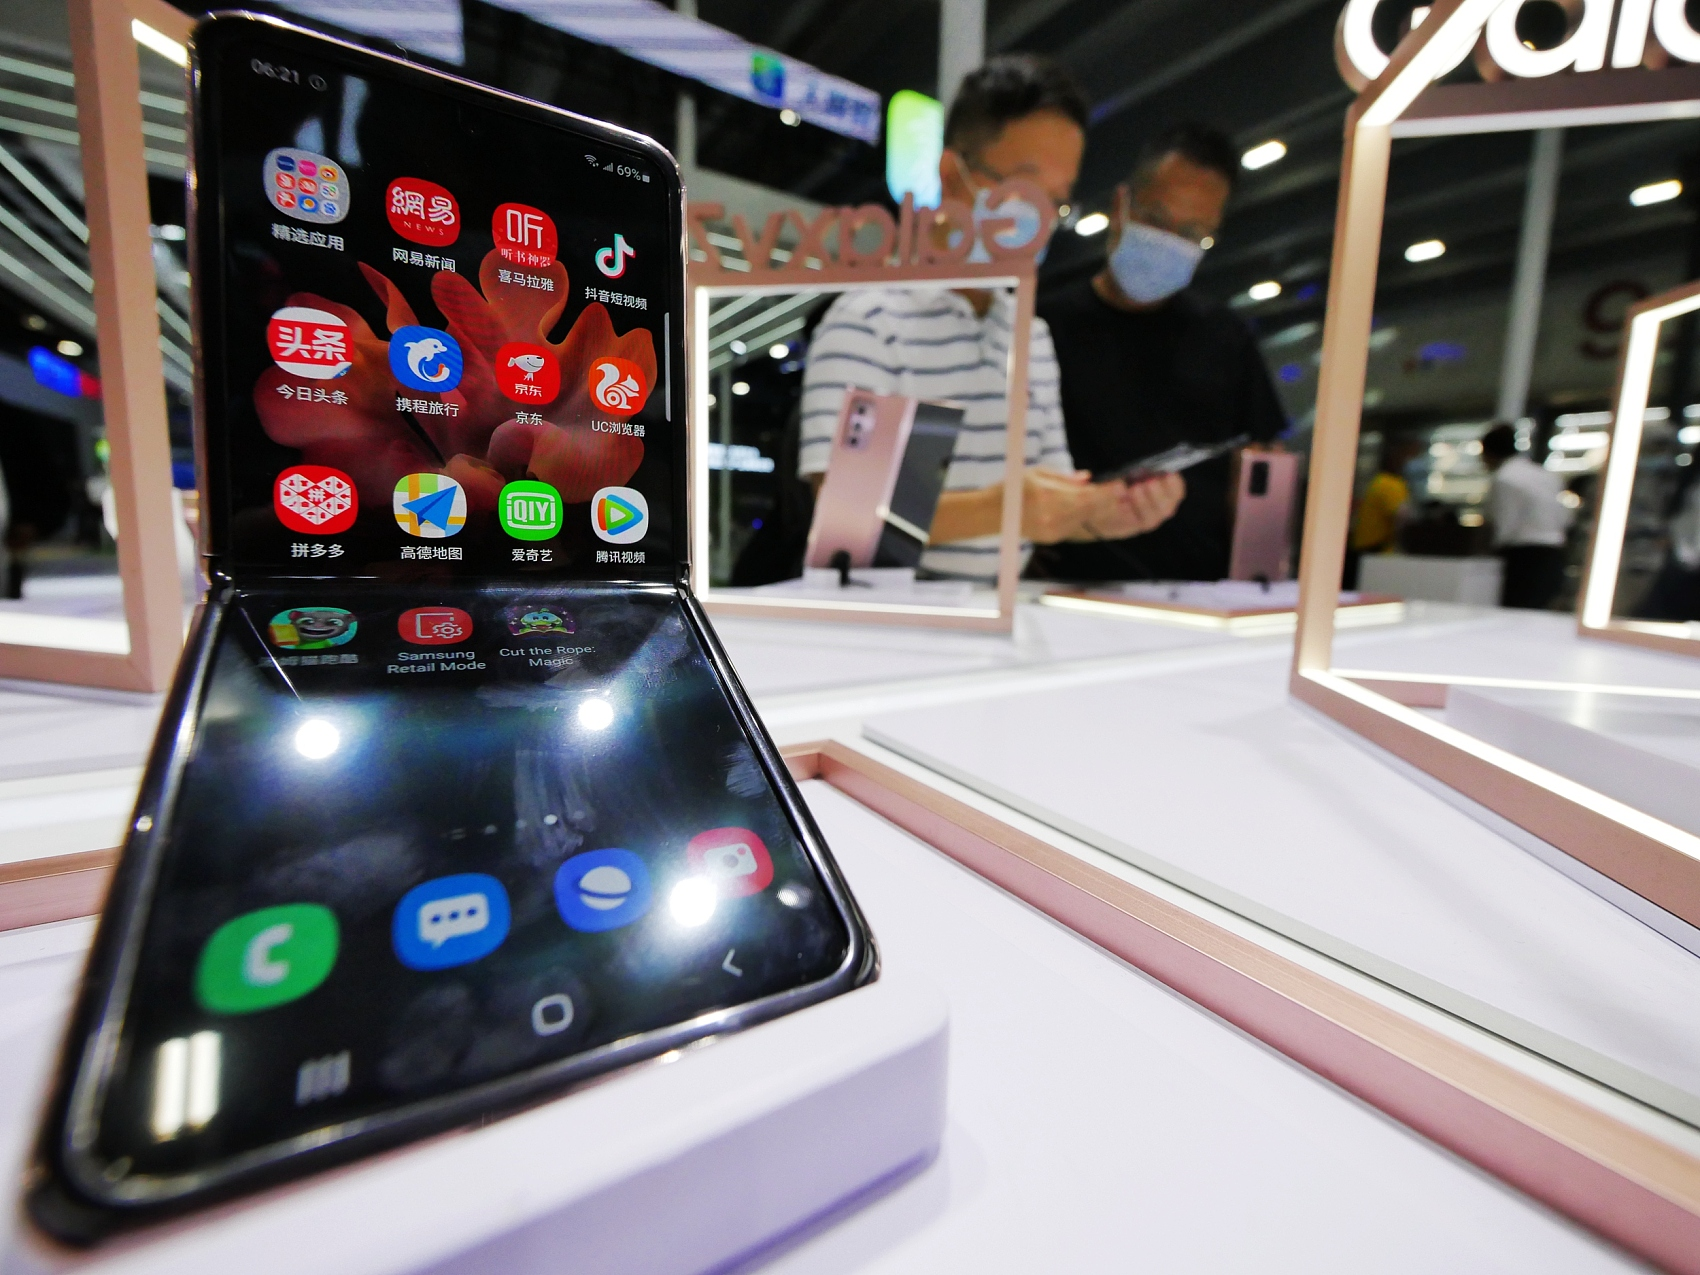 China aims to complete the construction of 5G network in 5 years: MIIT